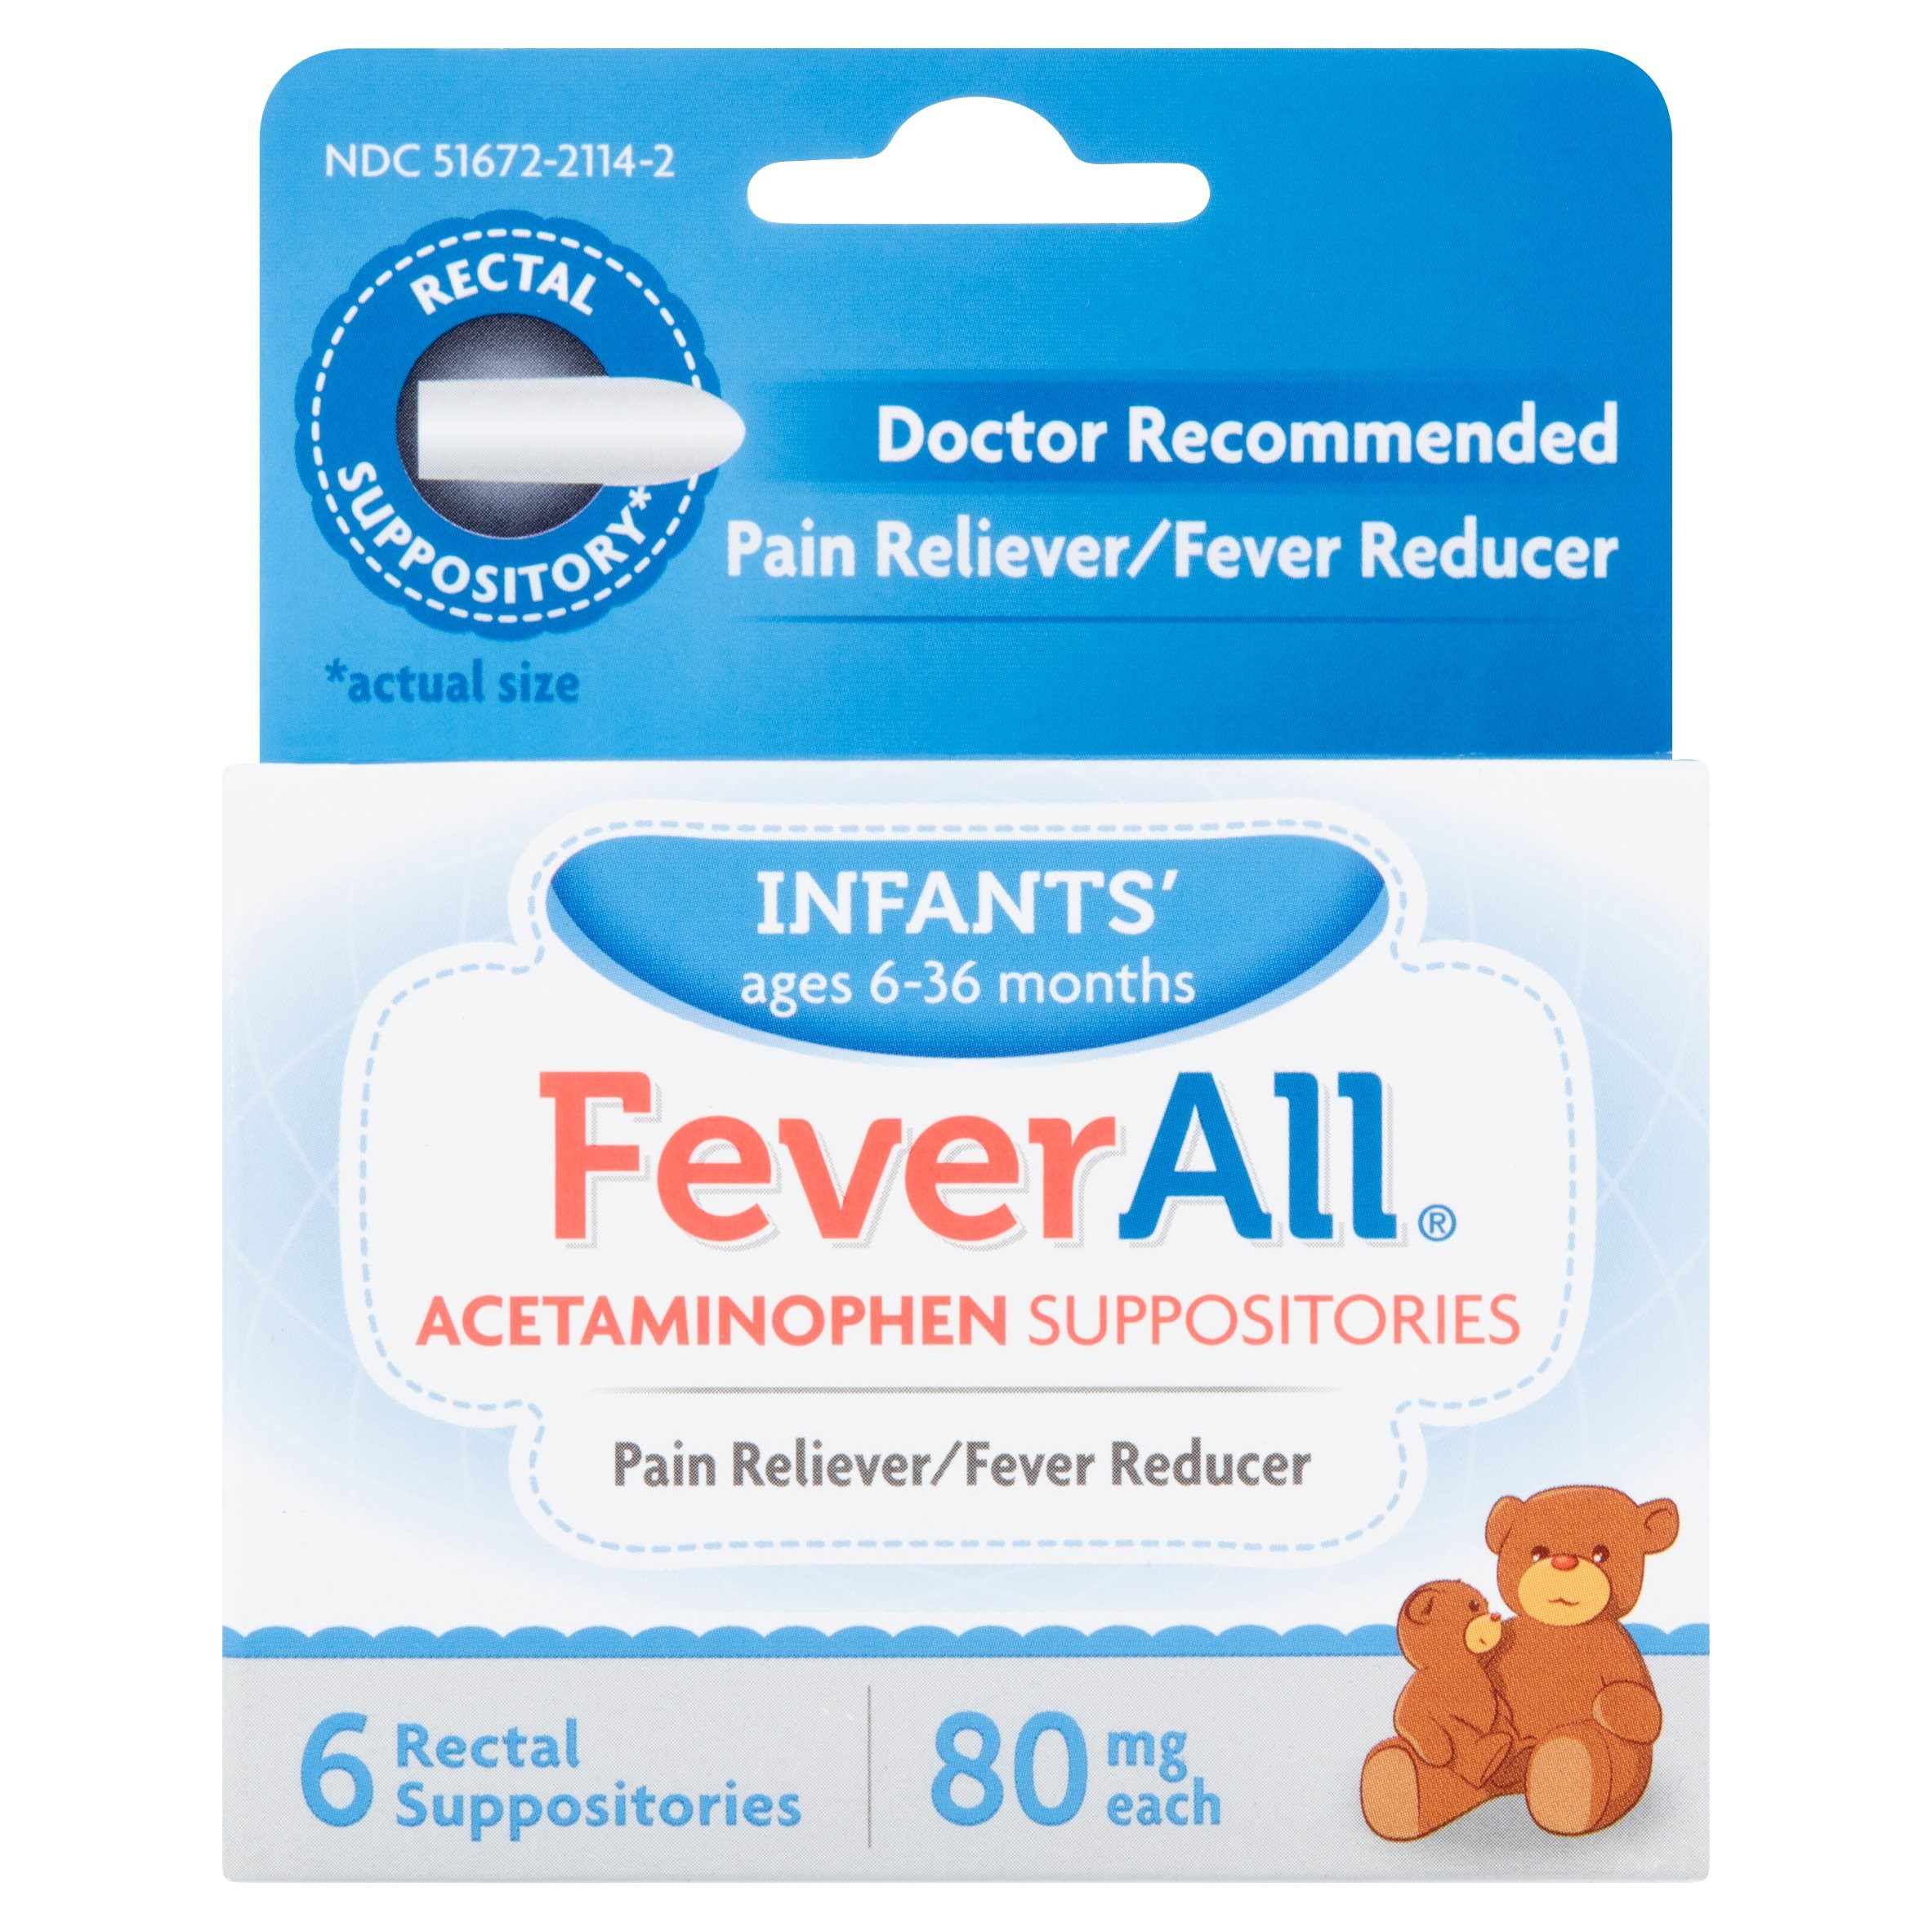 Fever All Acetaminophen Suppositories Infants' Ages 6-36 Months, 80 mg, 6 count